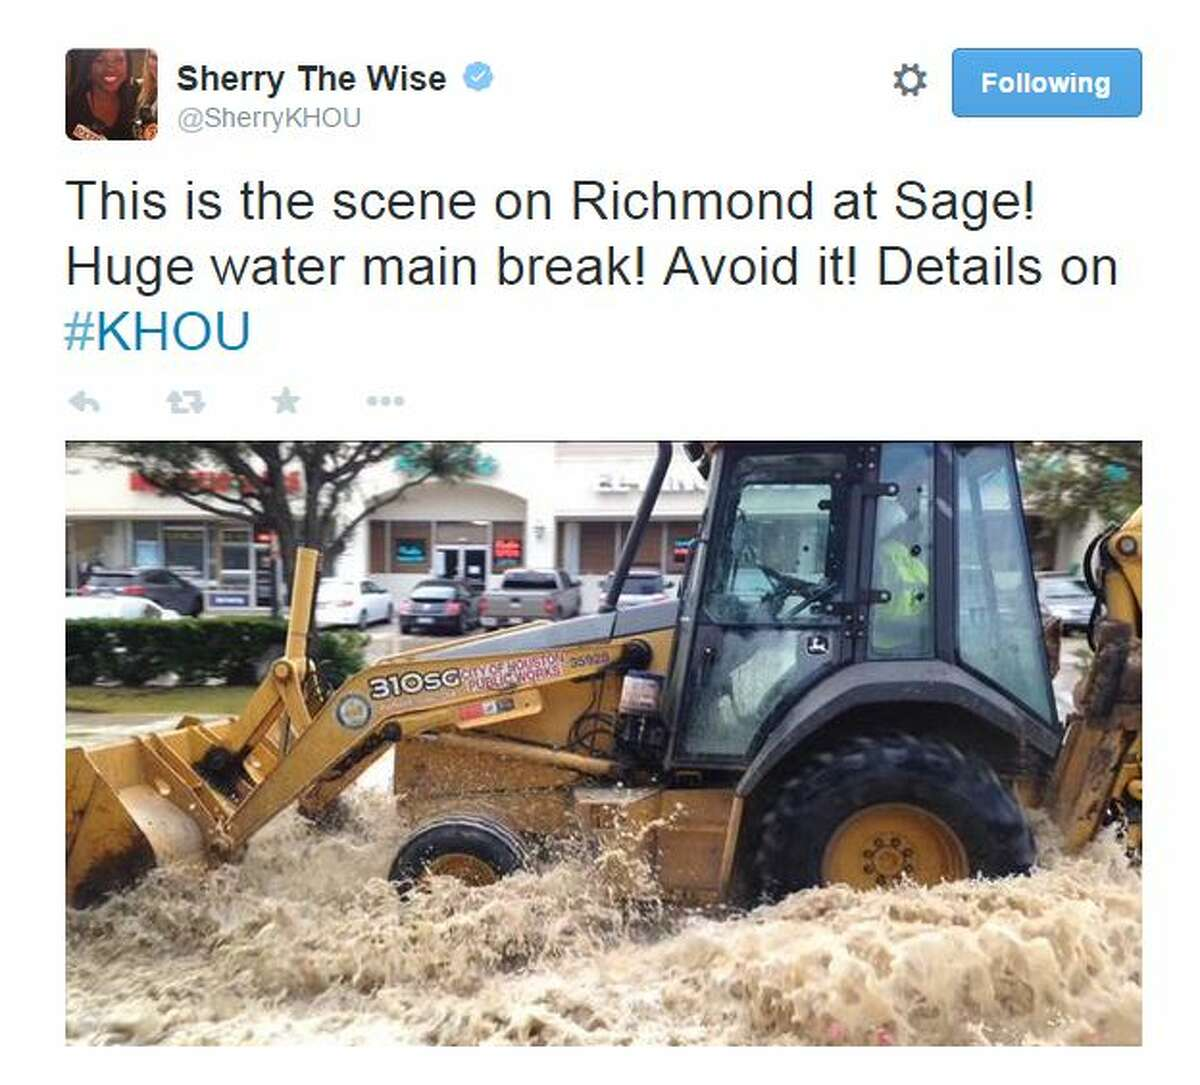 A water main break along Richmond has shut down a portion of the street from Rice to Sage on Saturday morning.